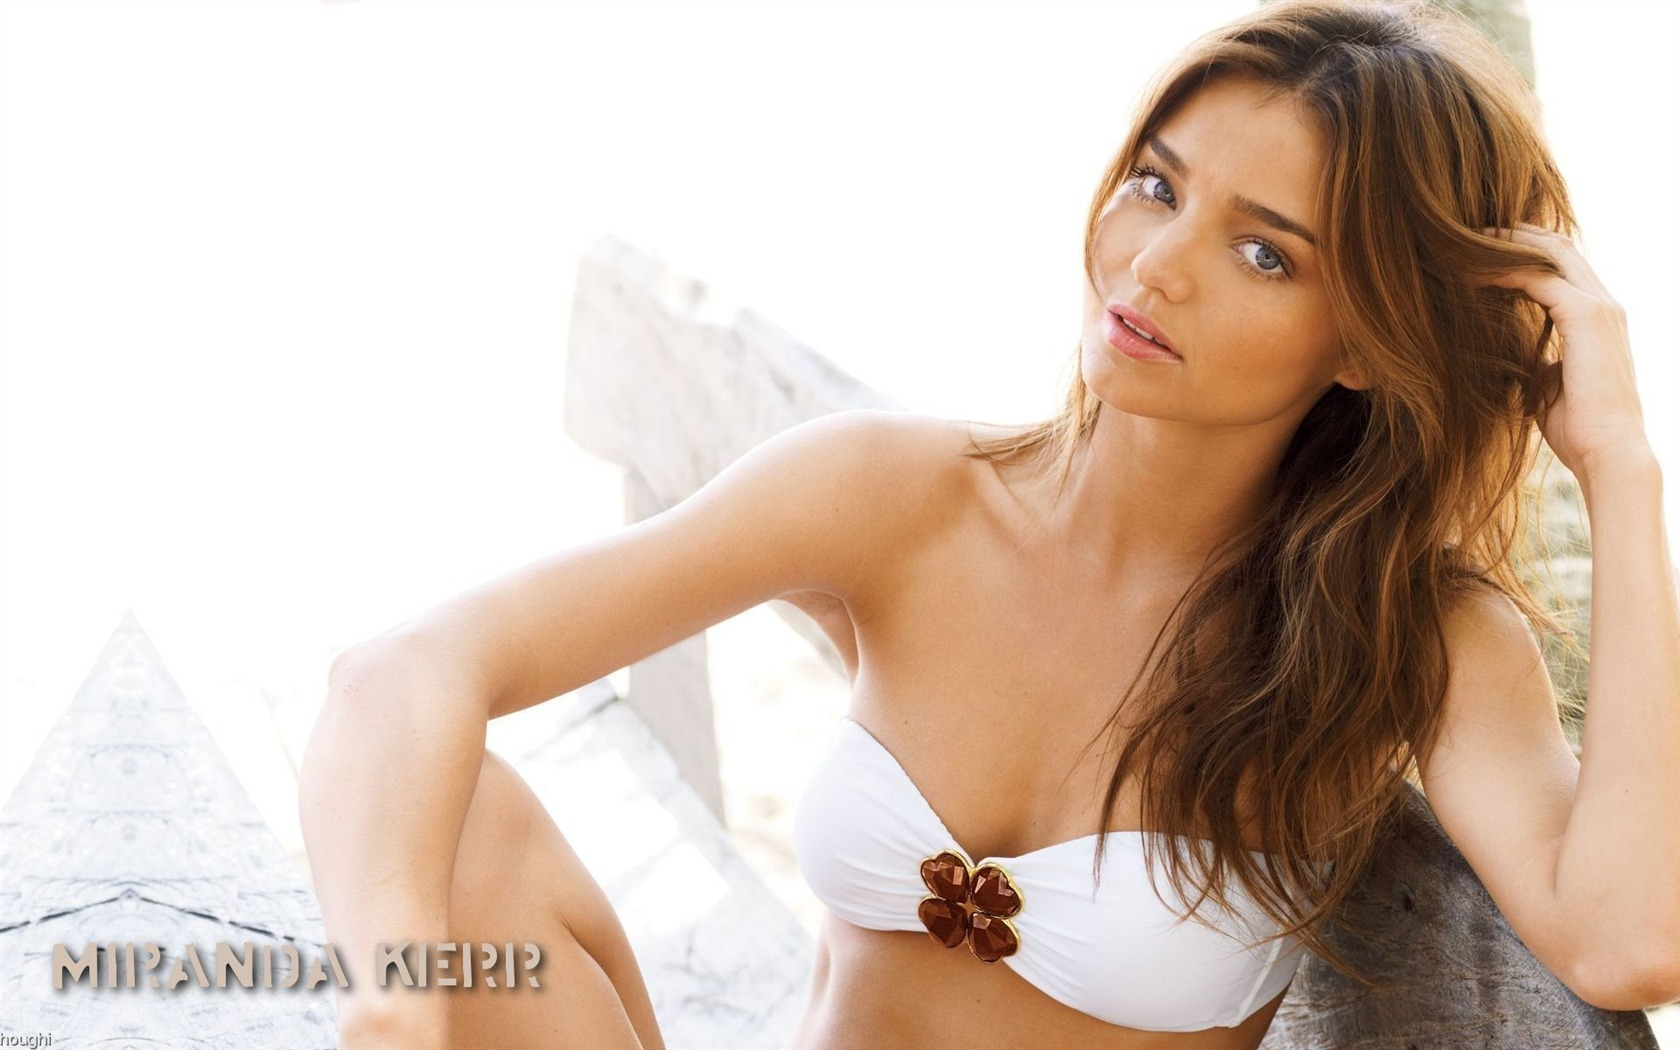 Miranda Kerr #026 - 1680x1050 Wallpapers Pictures Photos Images